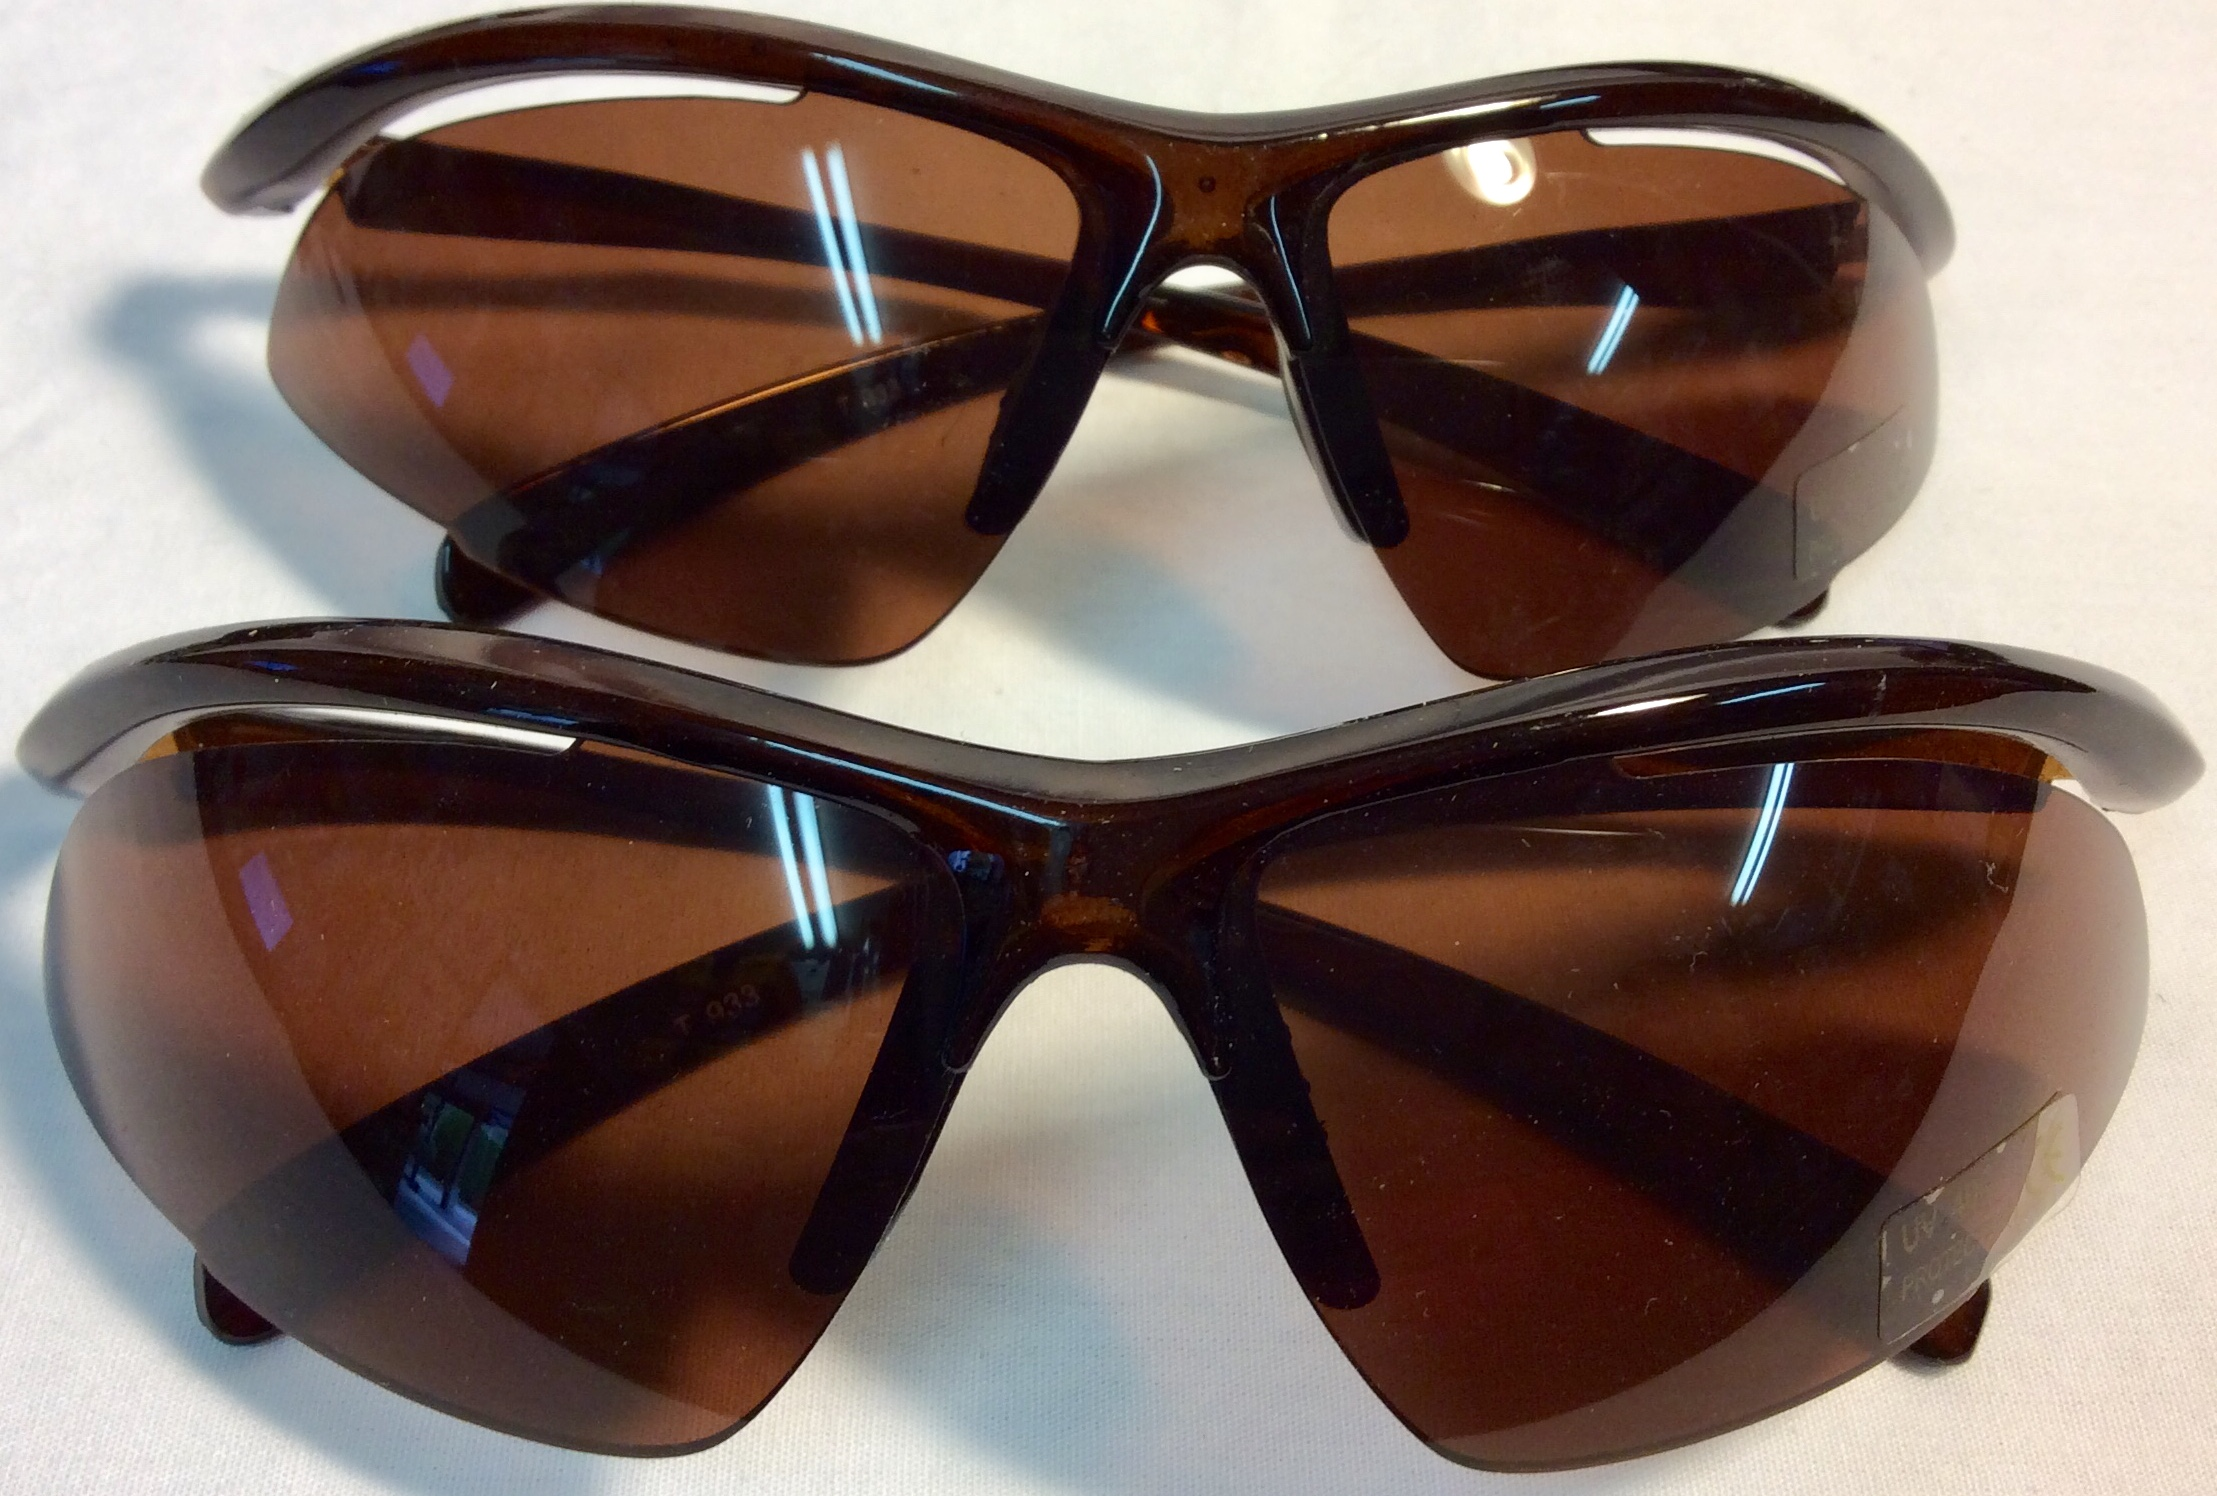 Sport style sunglasses with brown lenses